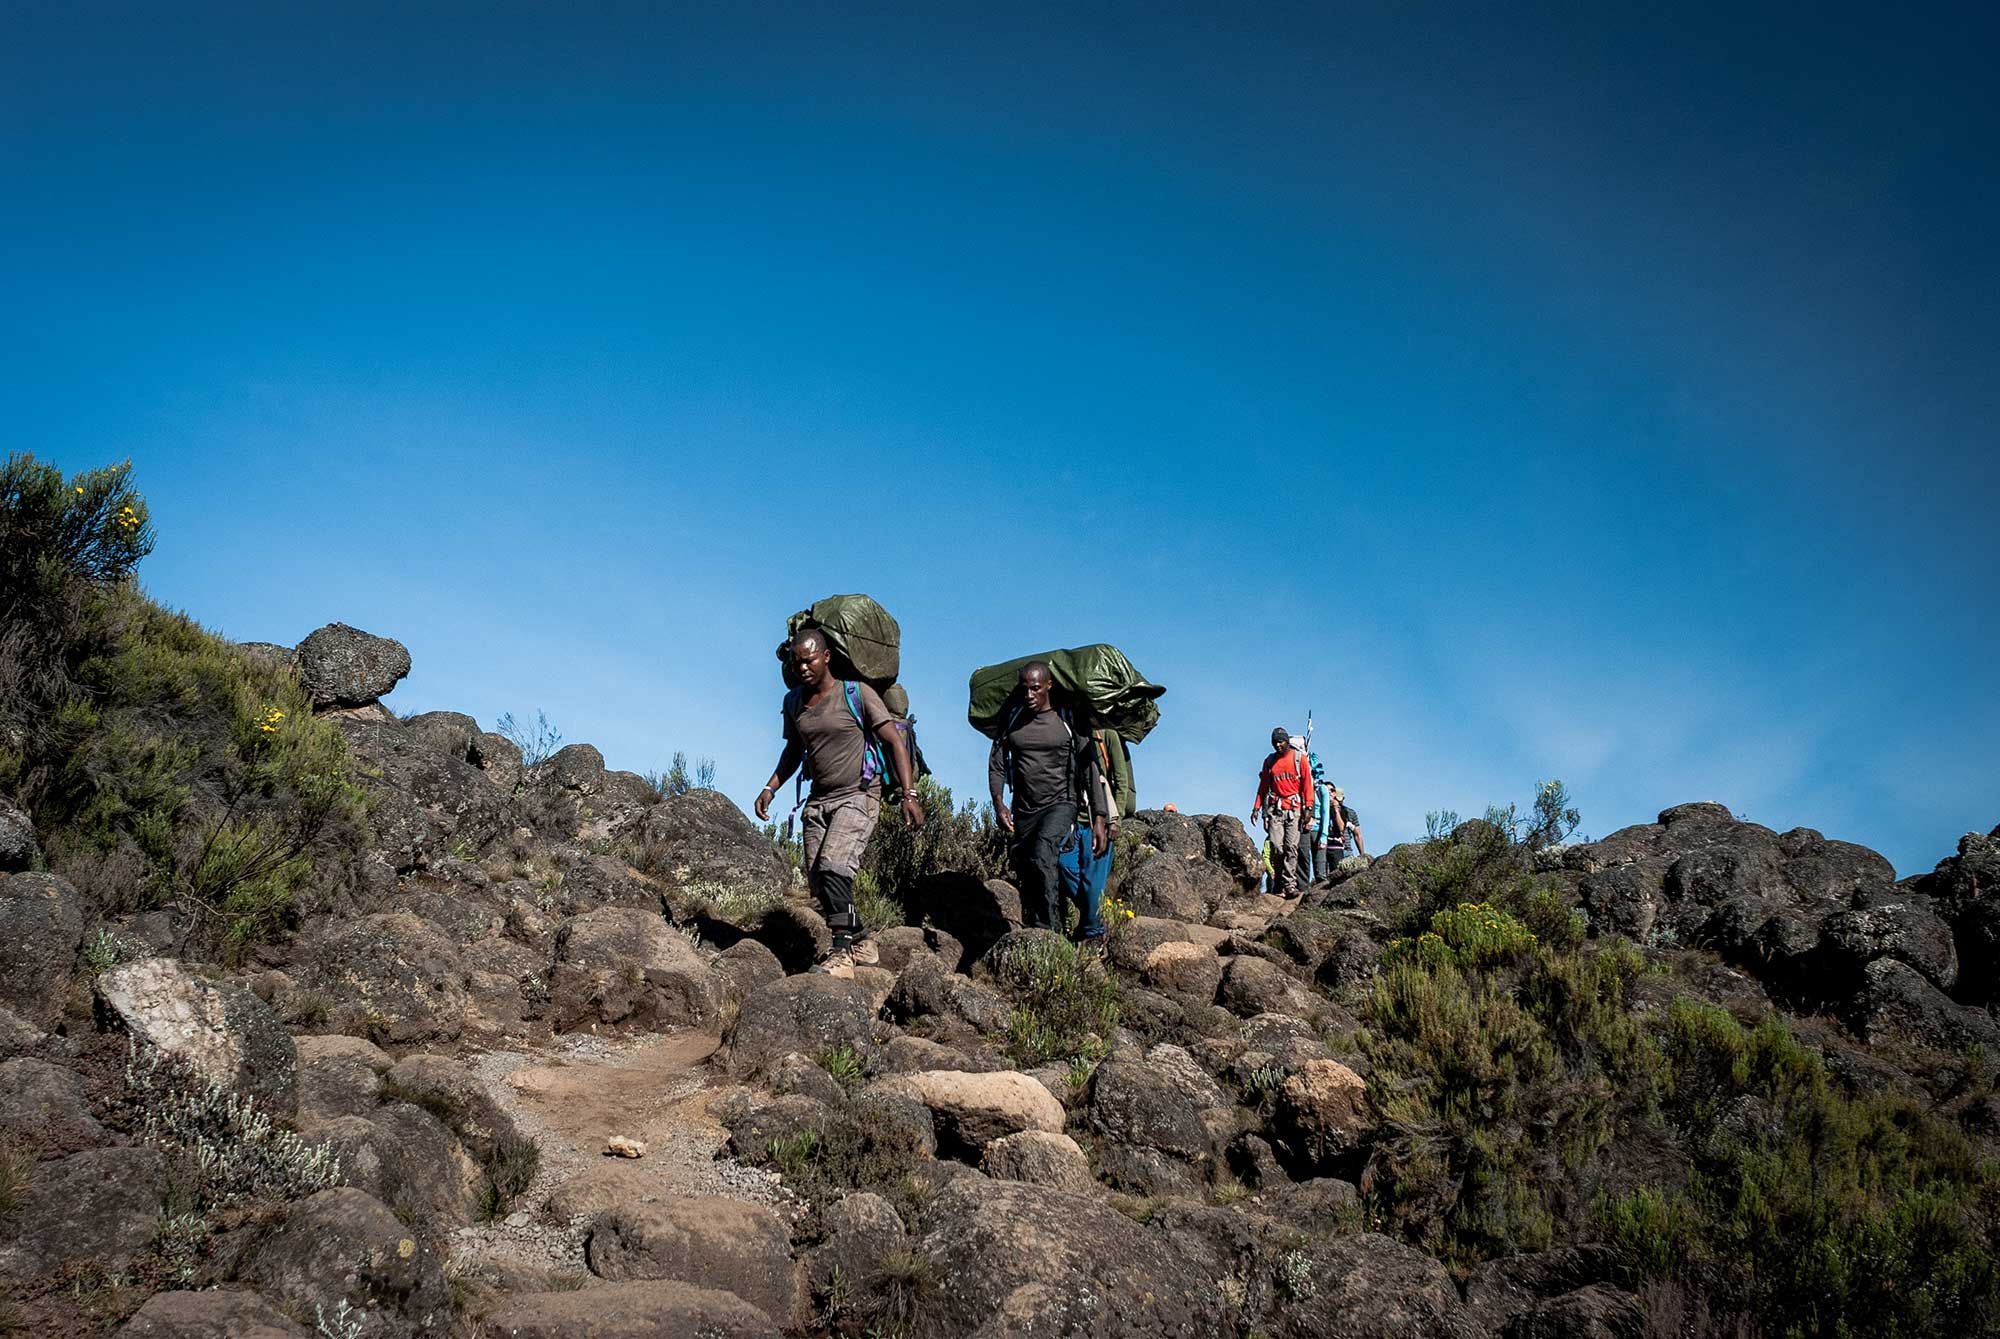 D3-18-porters-carrying-heavy-loads-shira-plateau-kilimanjaro.jpg